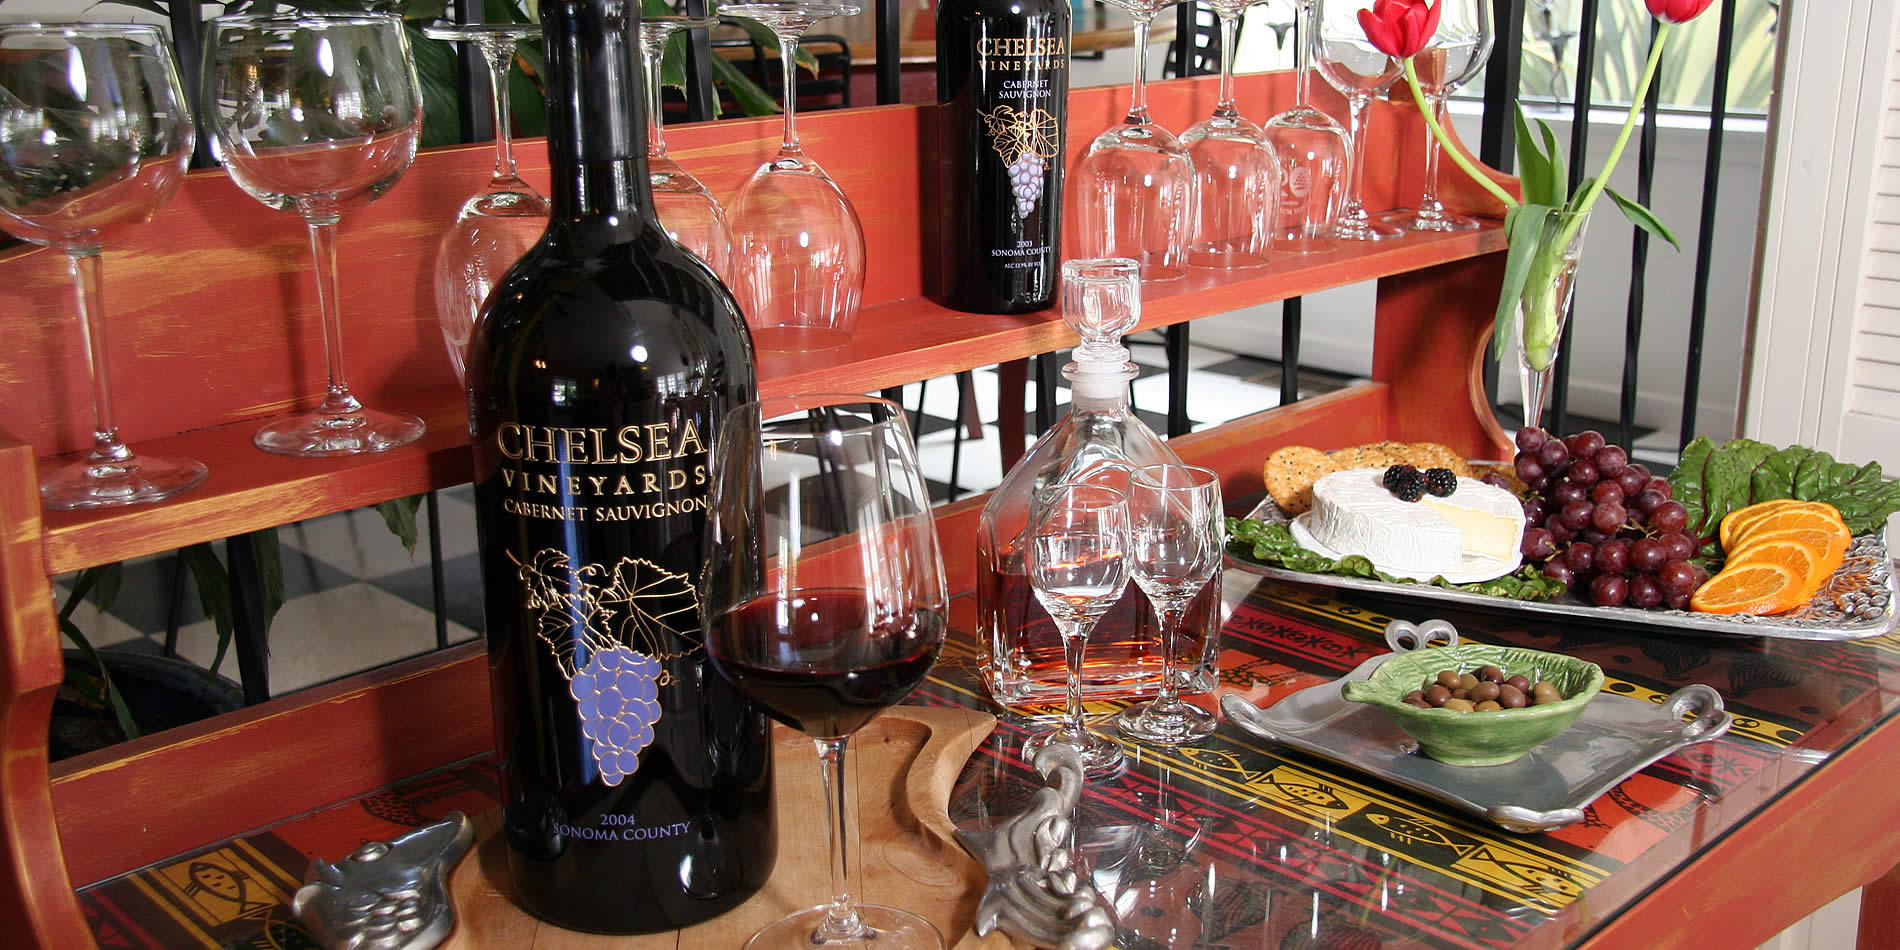 purchase chelsea vineyards wine